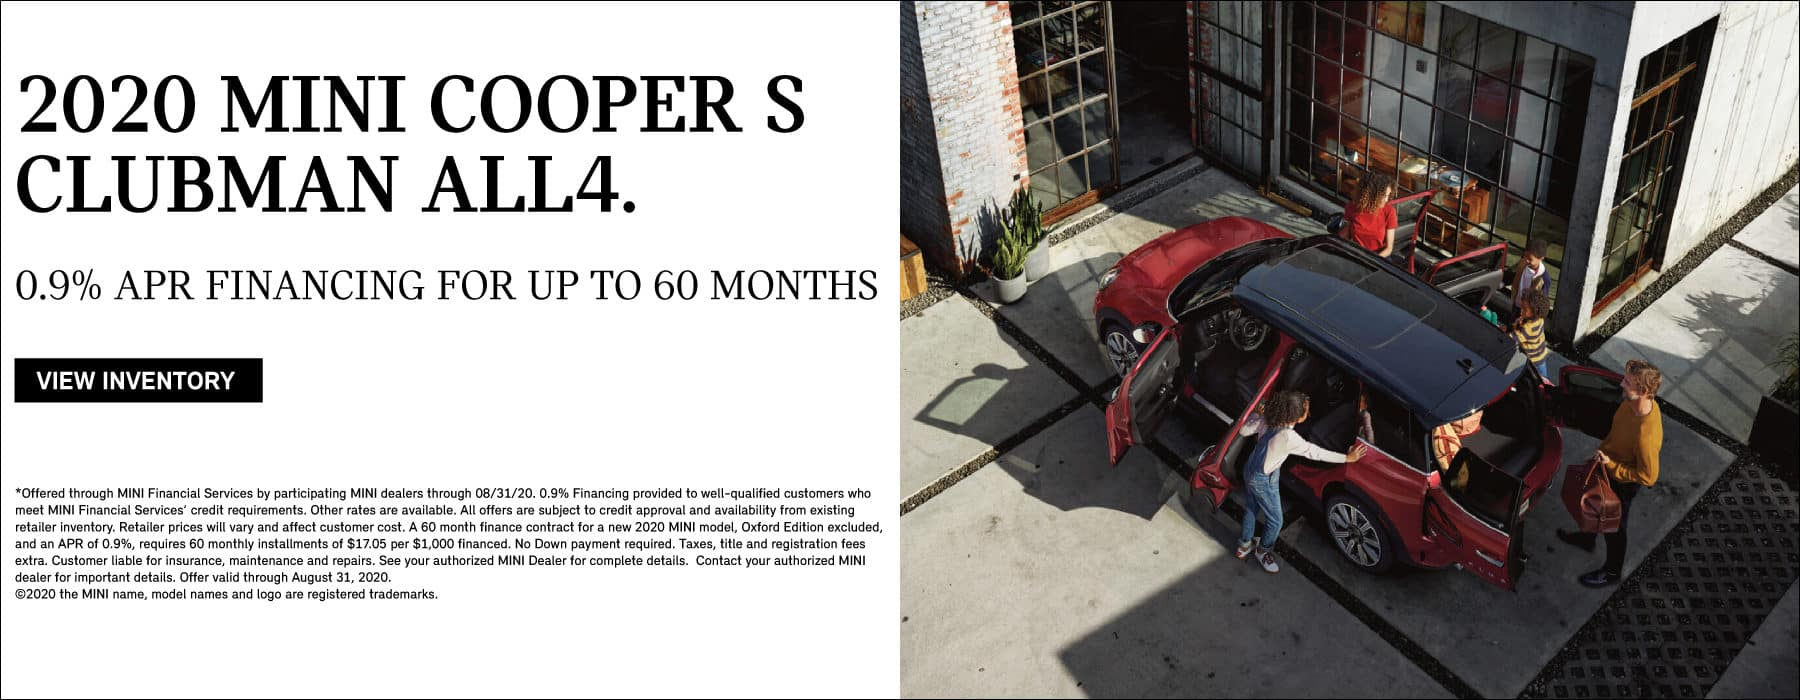 MINI COOPER S CLUBMAN ALL4 0.9% APR FINANCING FOR UP TO 60 MONTHS